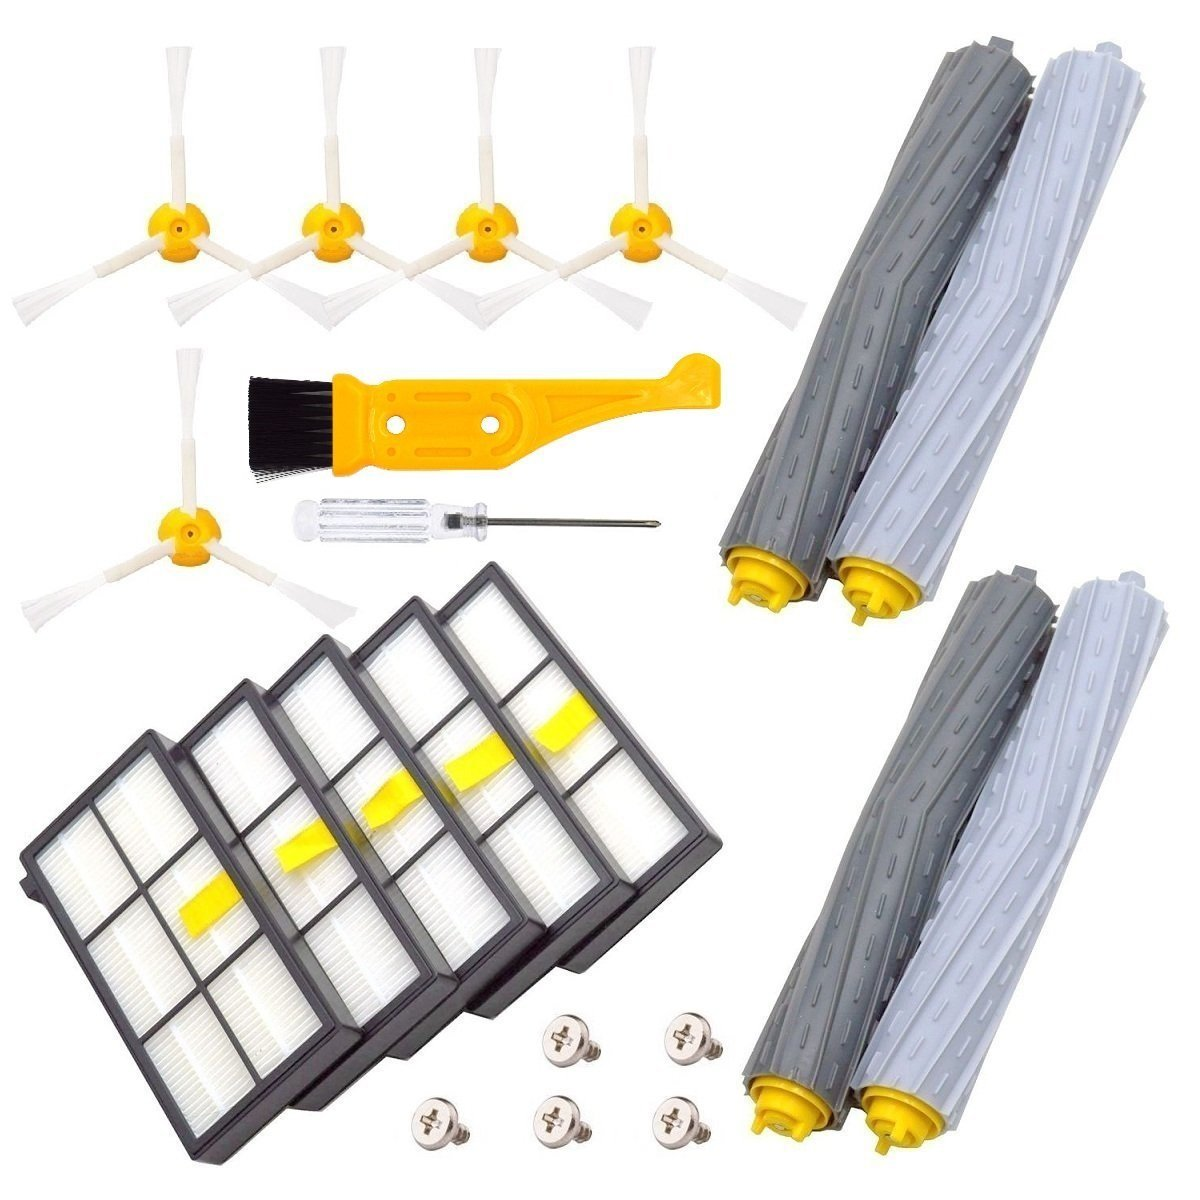 DerBlue Replacement Parts for iRobot Roomba 860 880 805 860 980 960 Vacuums, with 5 Pcs Hepa Filter, 5 Pcs 3-ArmedSide Brush, 2 Set Tangle-Free Debris Rollers by DerBlue